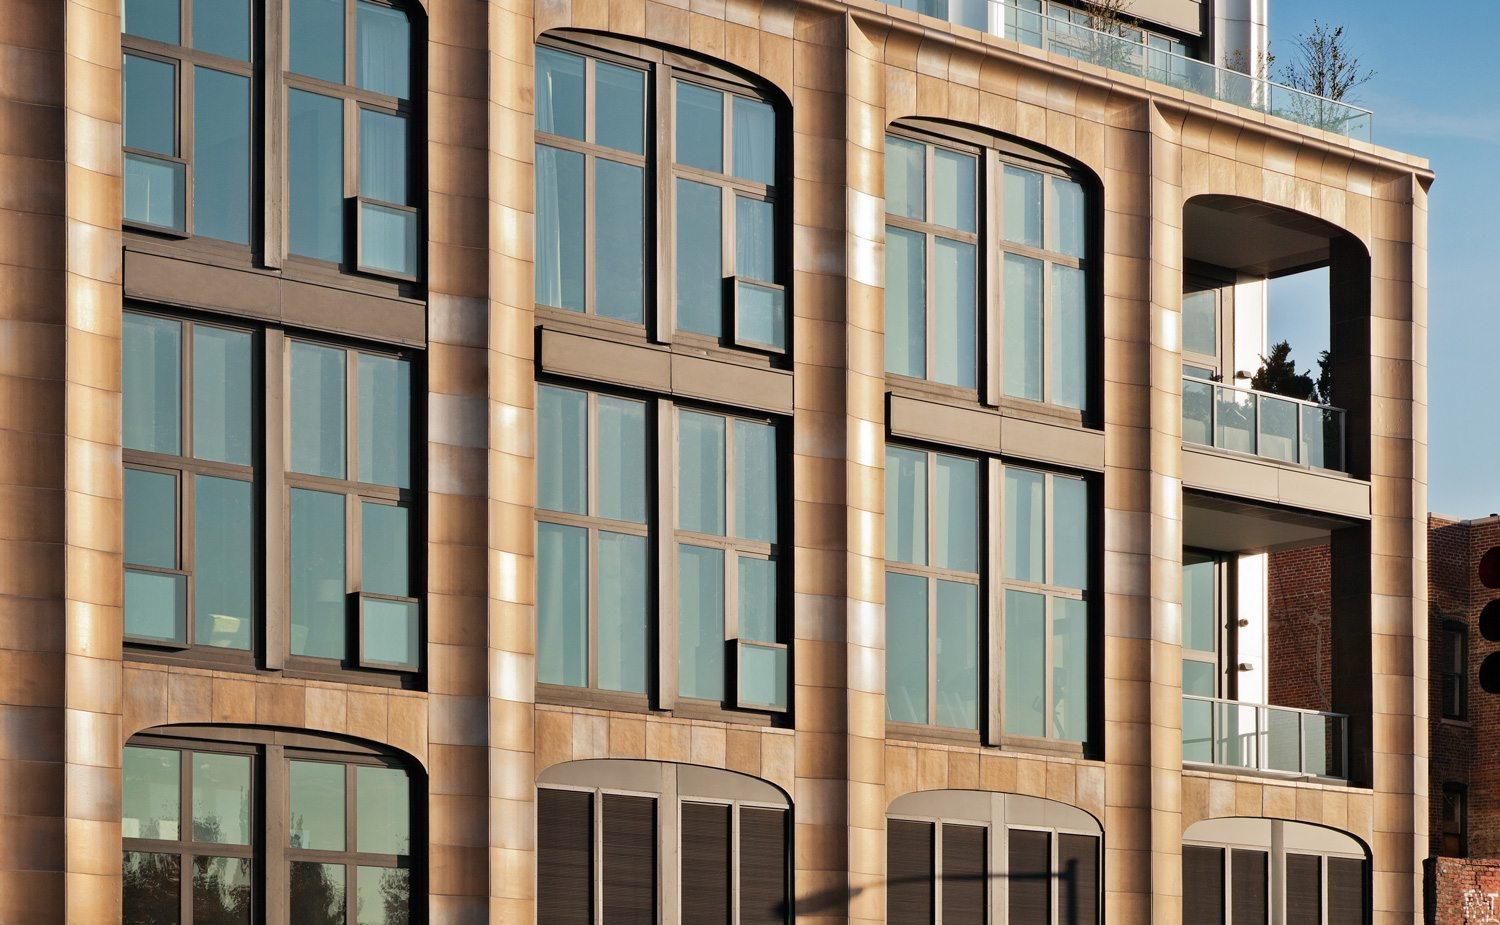 200 Eleventh Avenue in New York City, a new build architectural terra cotta masonry facade with a custom copper glaze. Designed by Selldorf Architects.